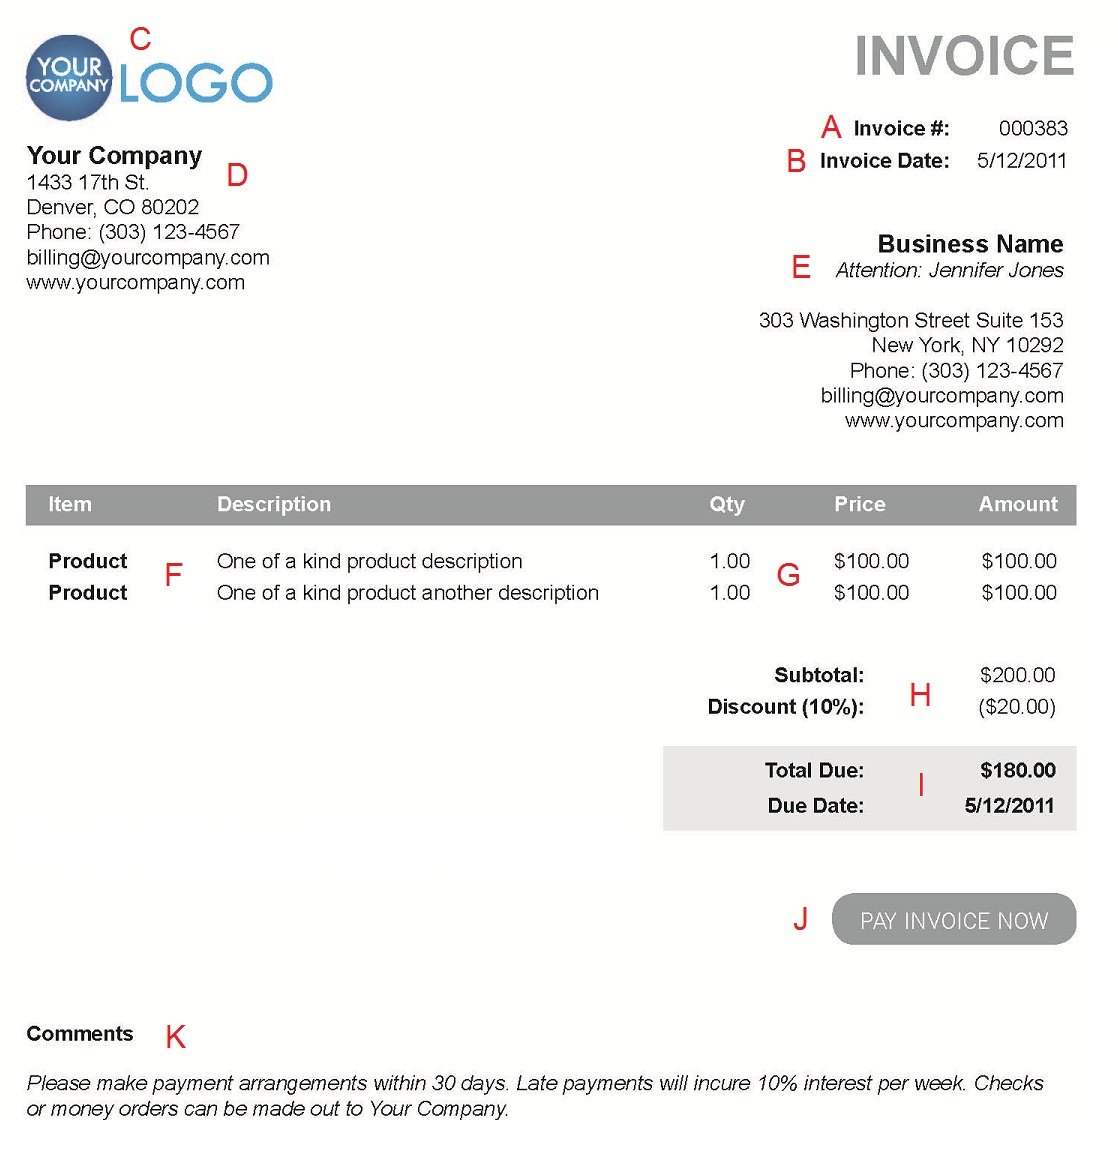 Ultrablogus  Seductive The  Different Sections Of An Electronic Payment Invoice With Remarkable A  With Astounding Rental Receipts Template Also Shop Receipt Template In Addition Dumpling Receipt And Printable Receipts For Daycare As Well As Delaware Gross Receipts Tax Return Additionally Biscuits Receipts From Paysimplecom With Ultrablogus  Remarkable The  Different Sections Of An Electronic Payment Invoice With Astounding A  And Seductive Rental Receipts Template Also Shop Receipt Template In Addition Dumpling Receipt From Paysimplecom